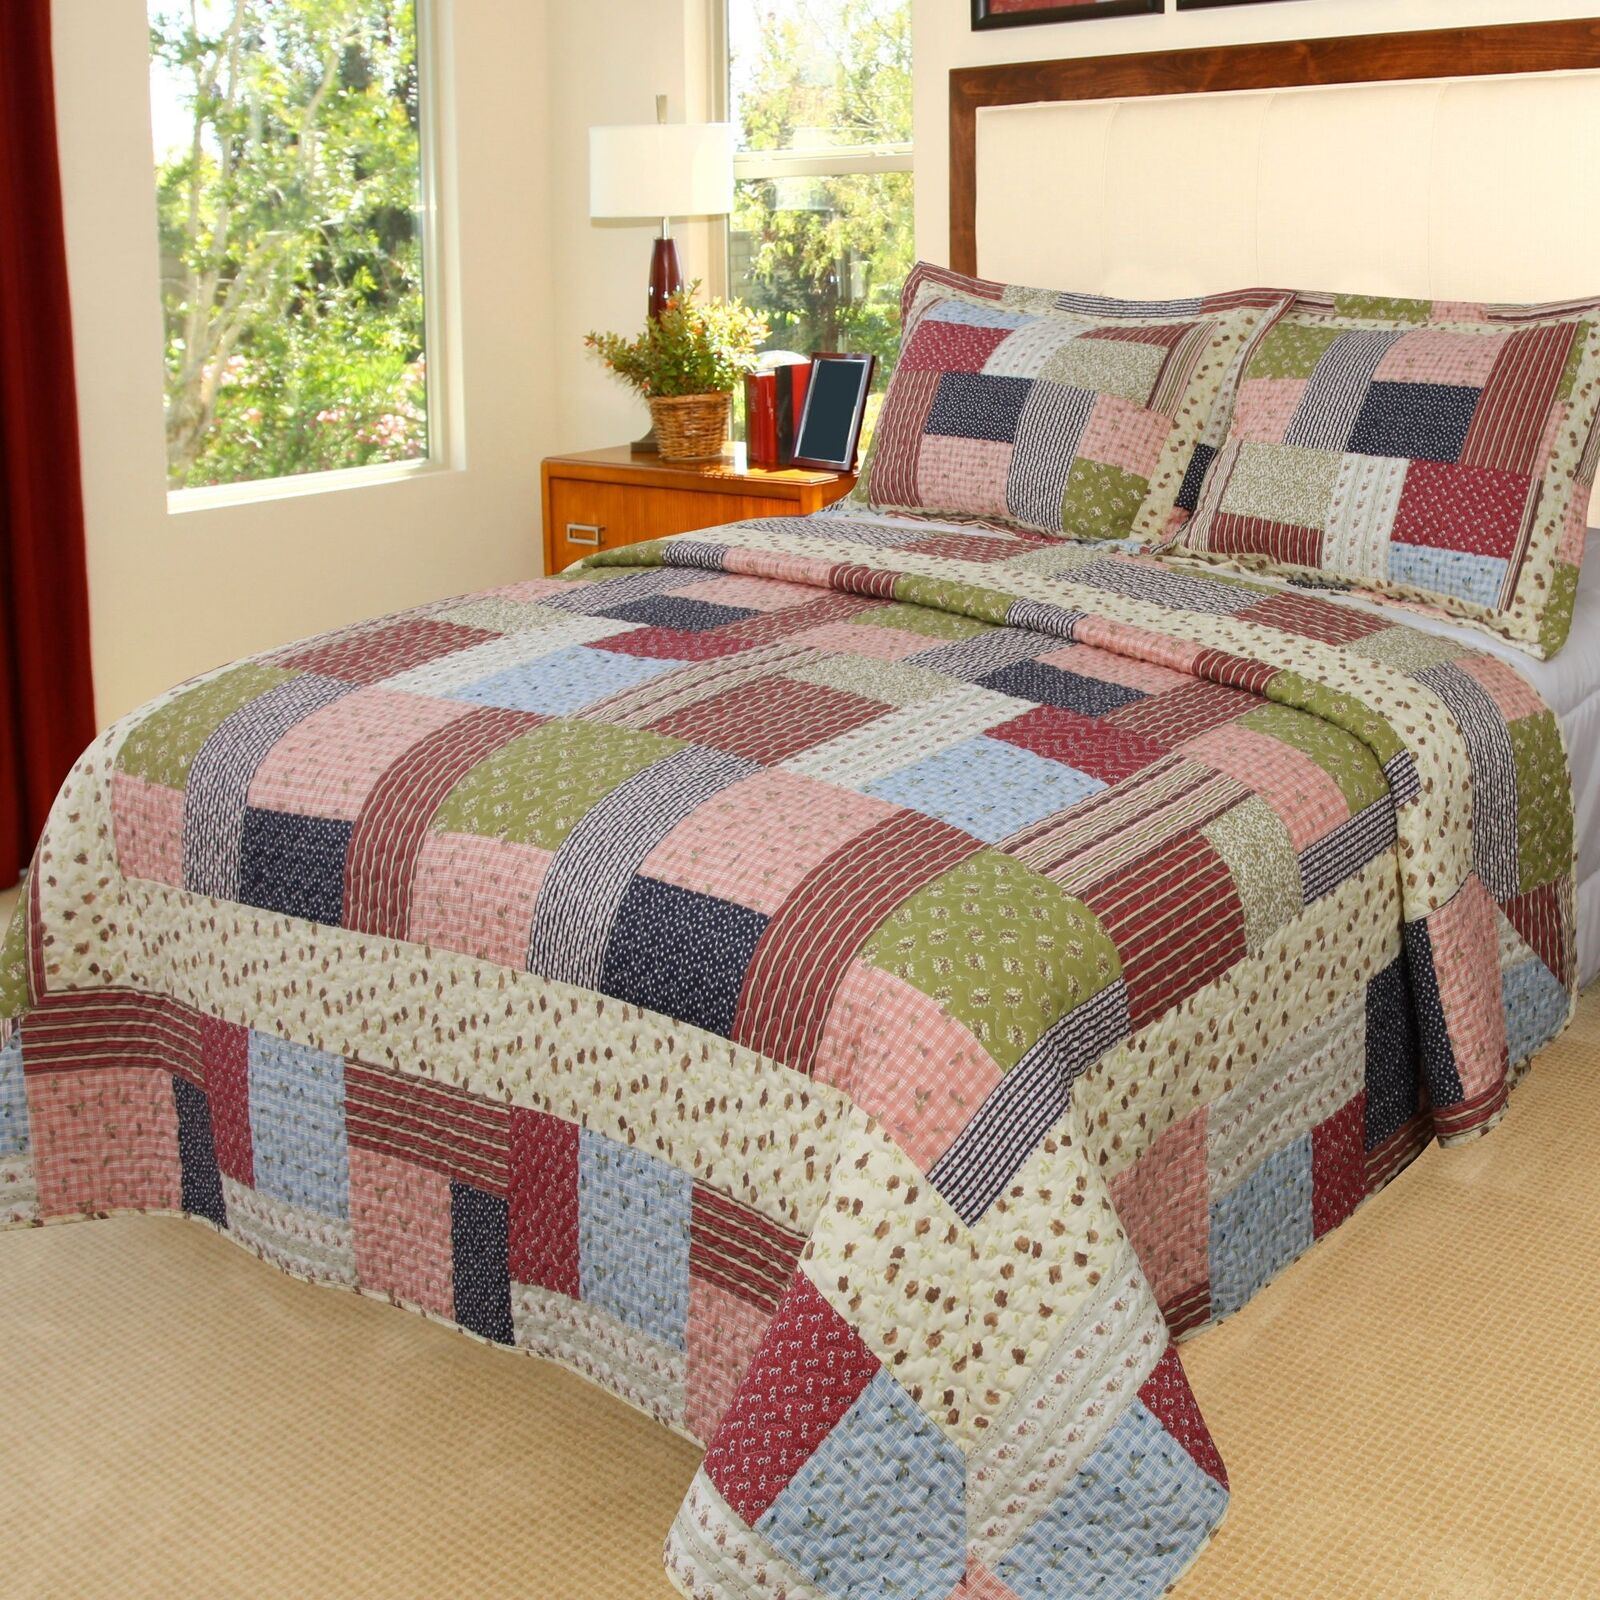 Bedford Home Savannah Printed 3-Piece Quilt Set, King